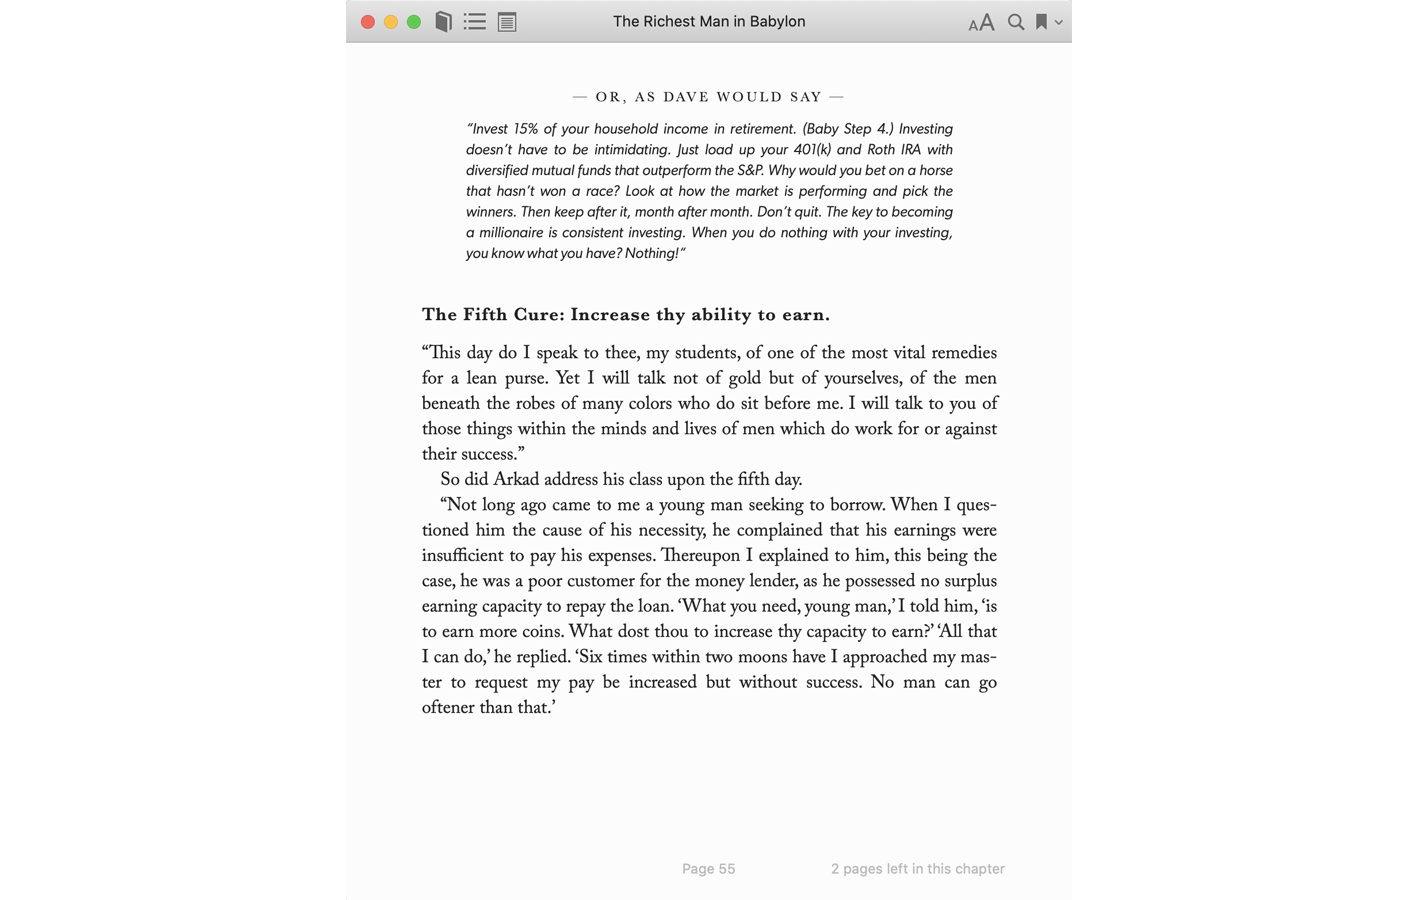 Page 55 for The Richest Man in Babylon